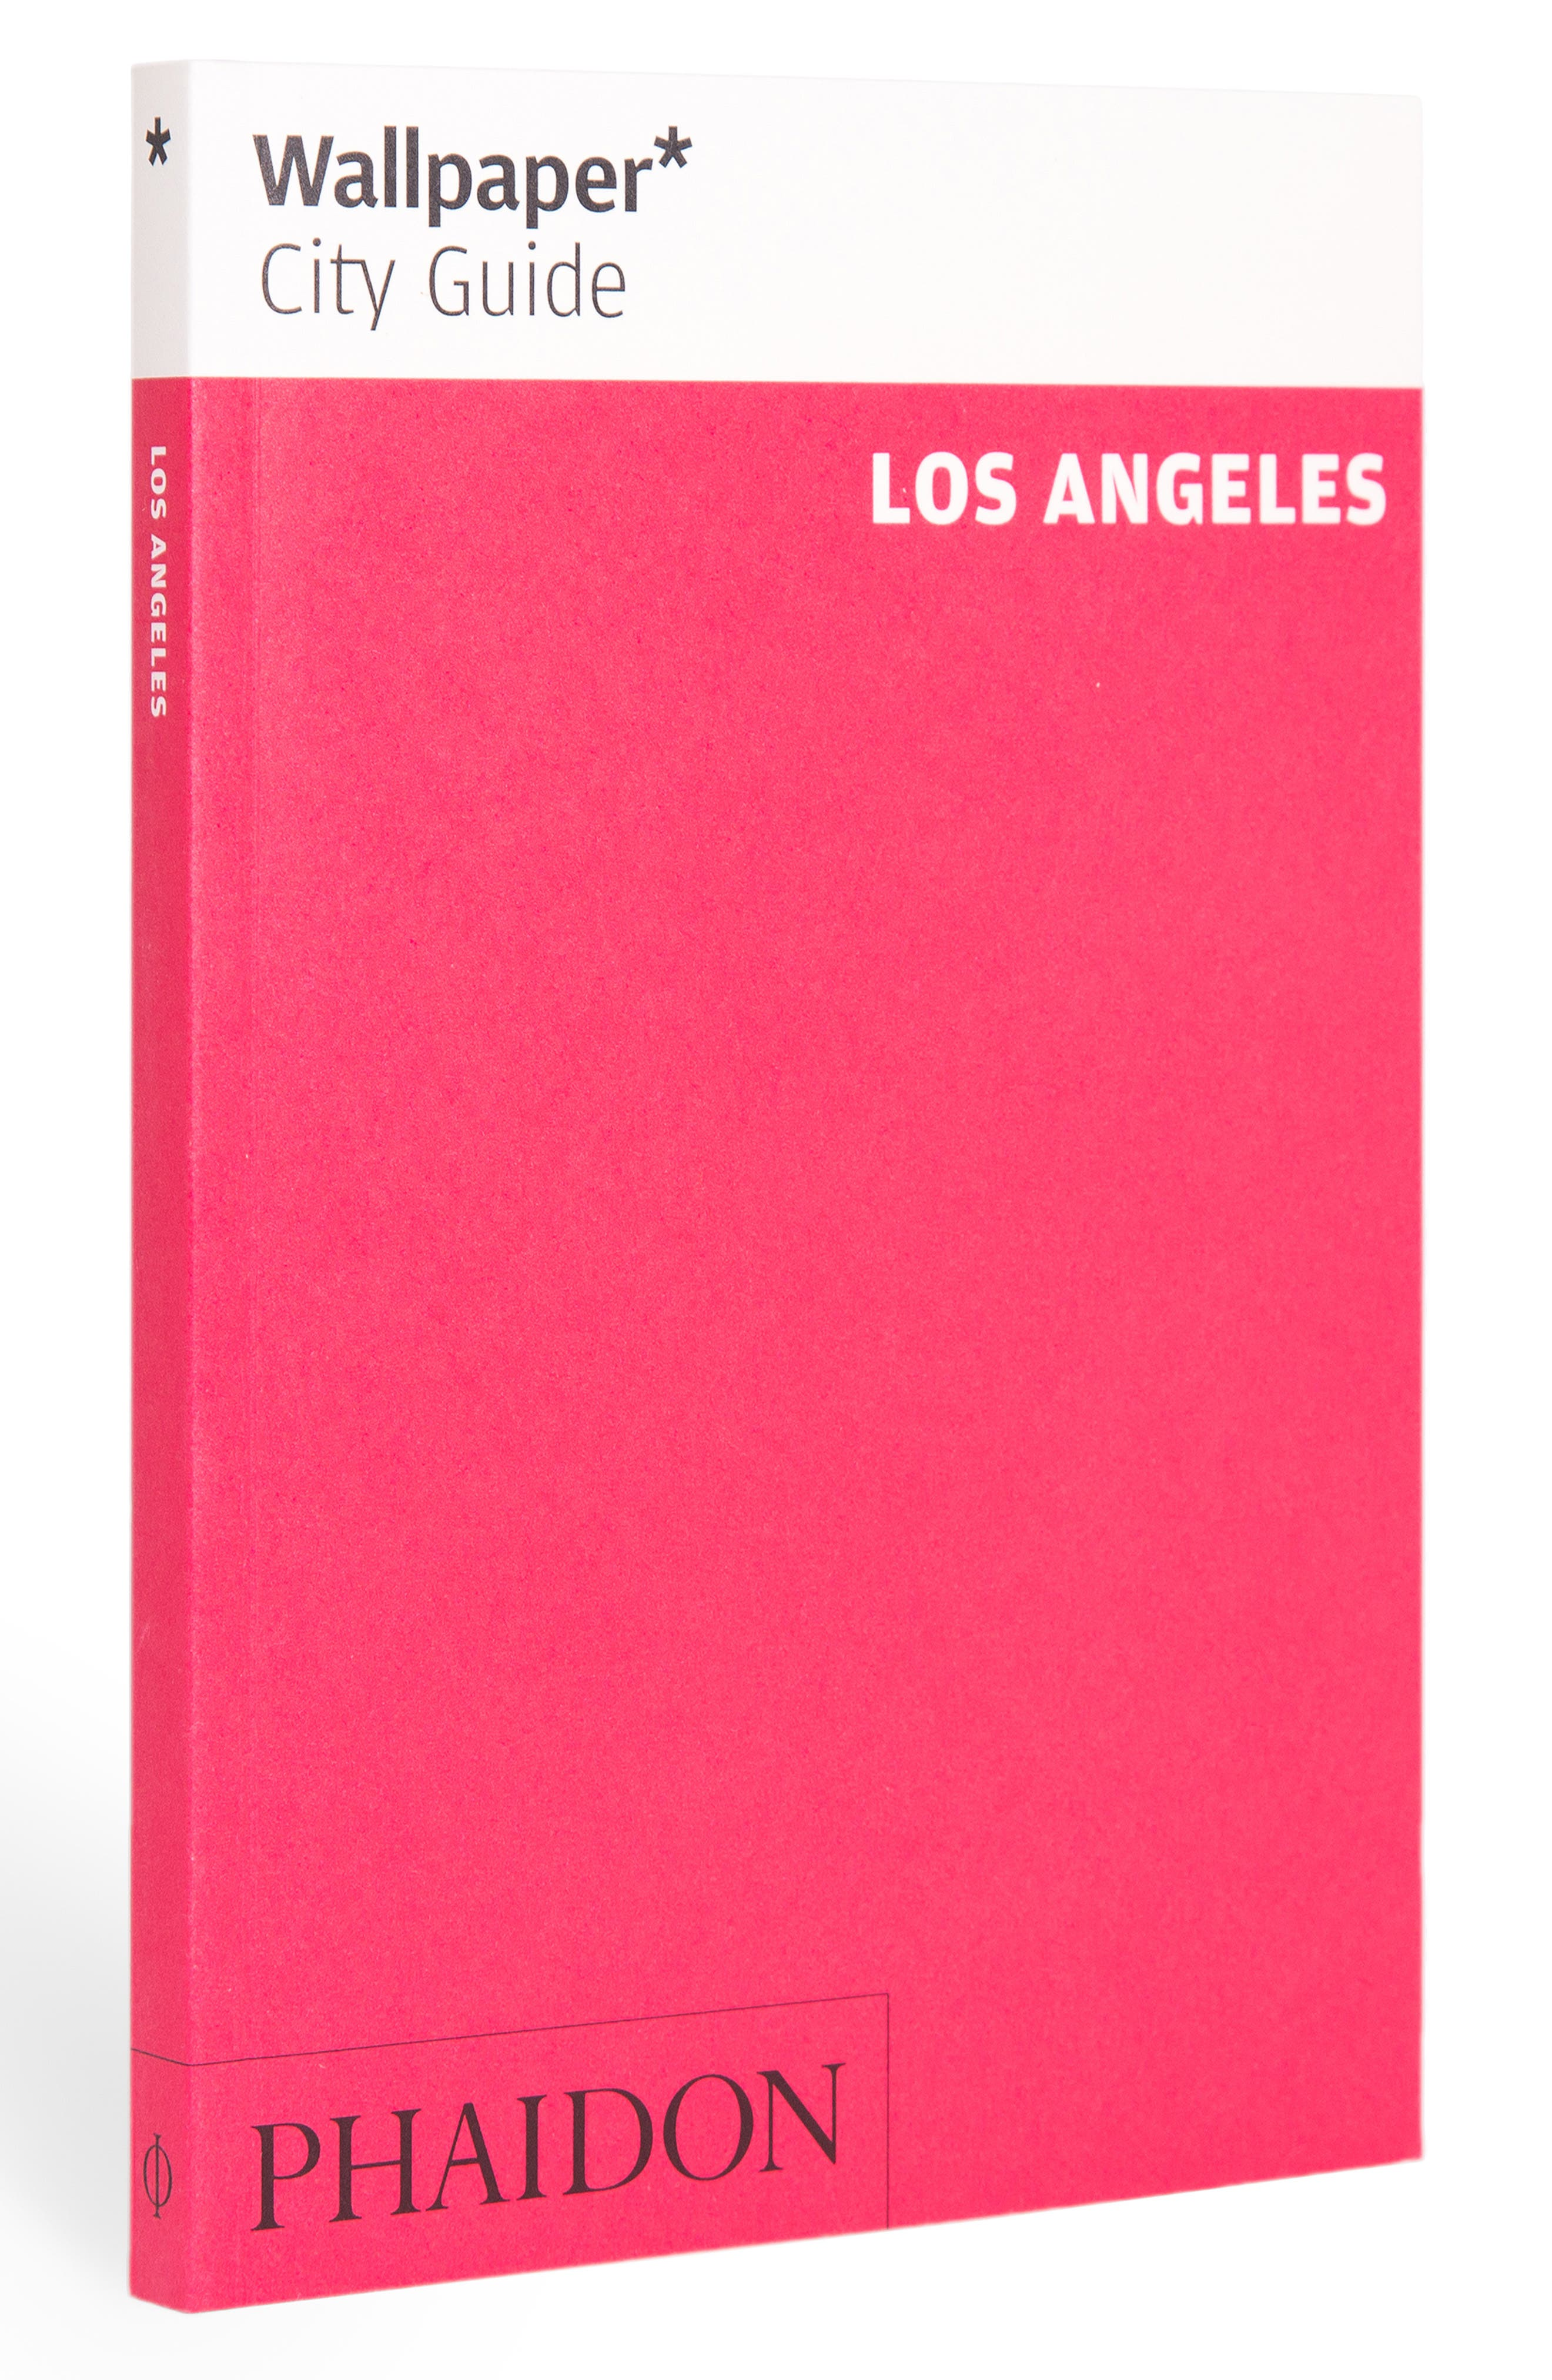 ISBN 9780714871387 product image for 'Wallpaper* City Guide Los Angeles' Pocket Size Travel Book, Size One Size - Pin | upcitemdb.com